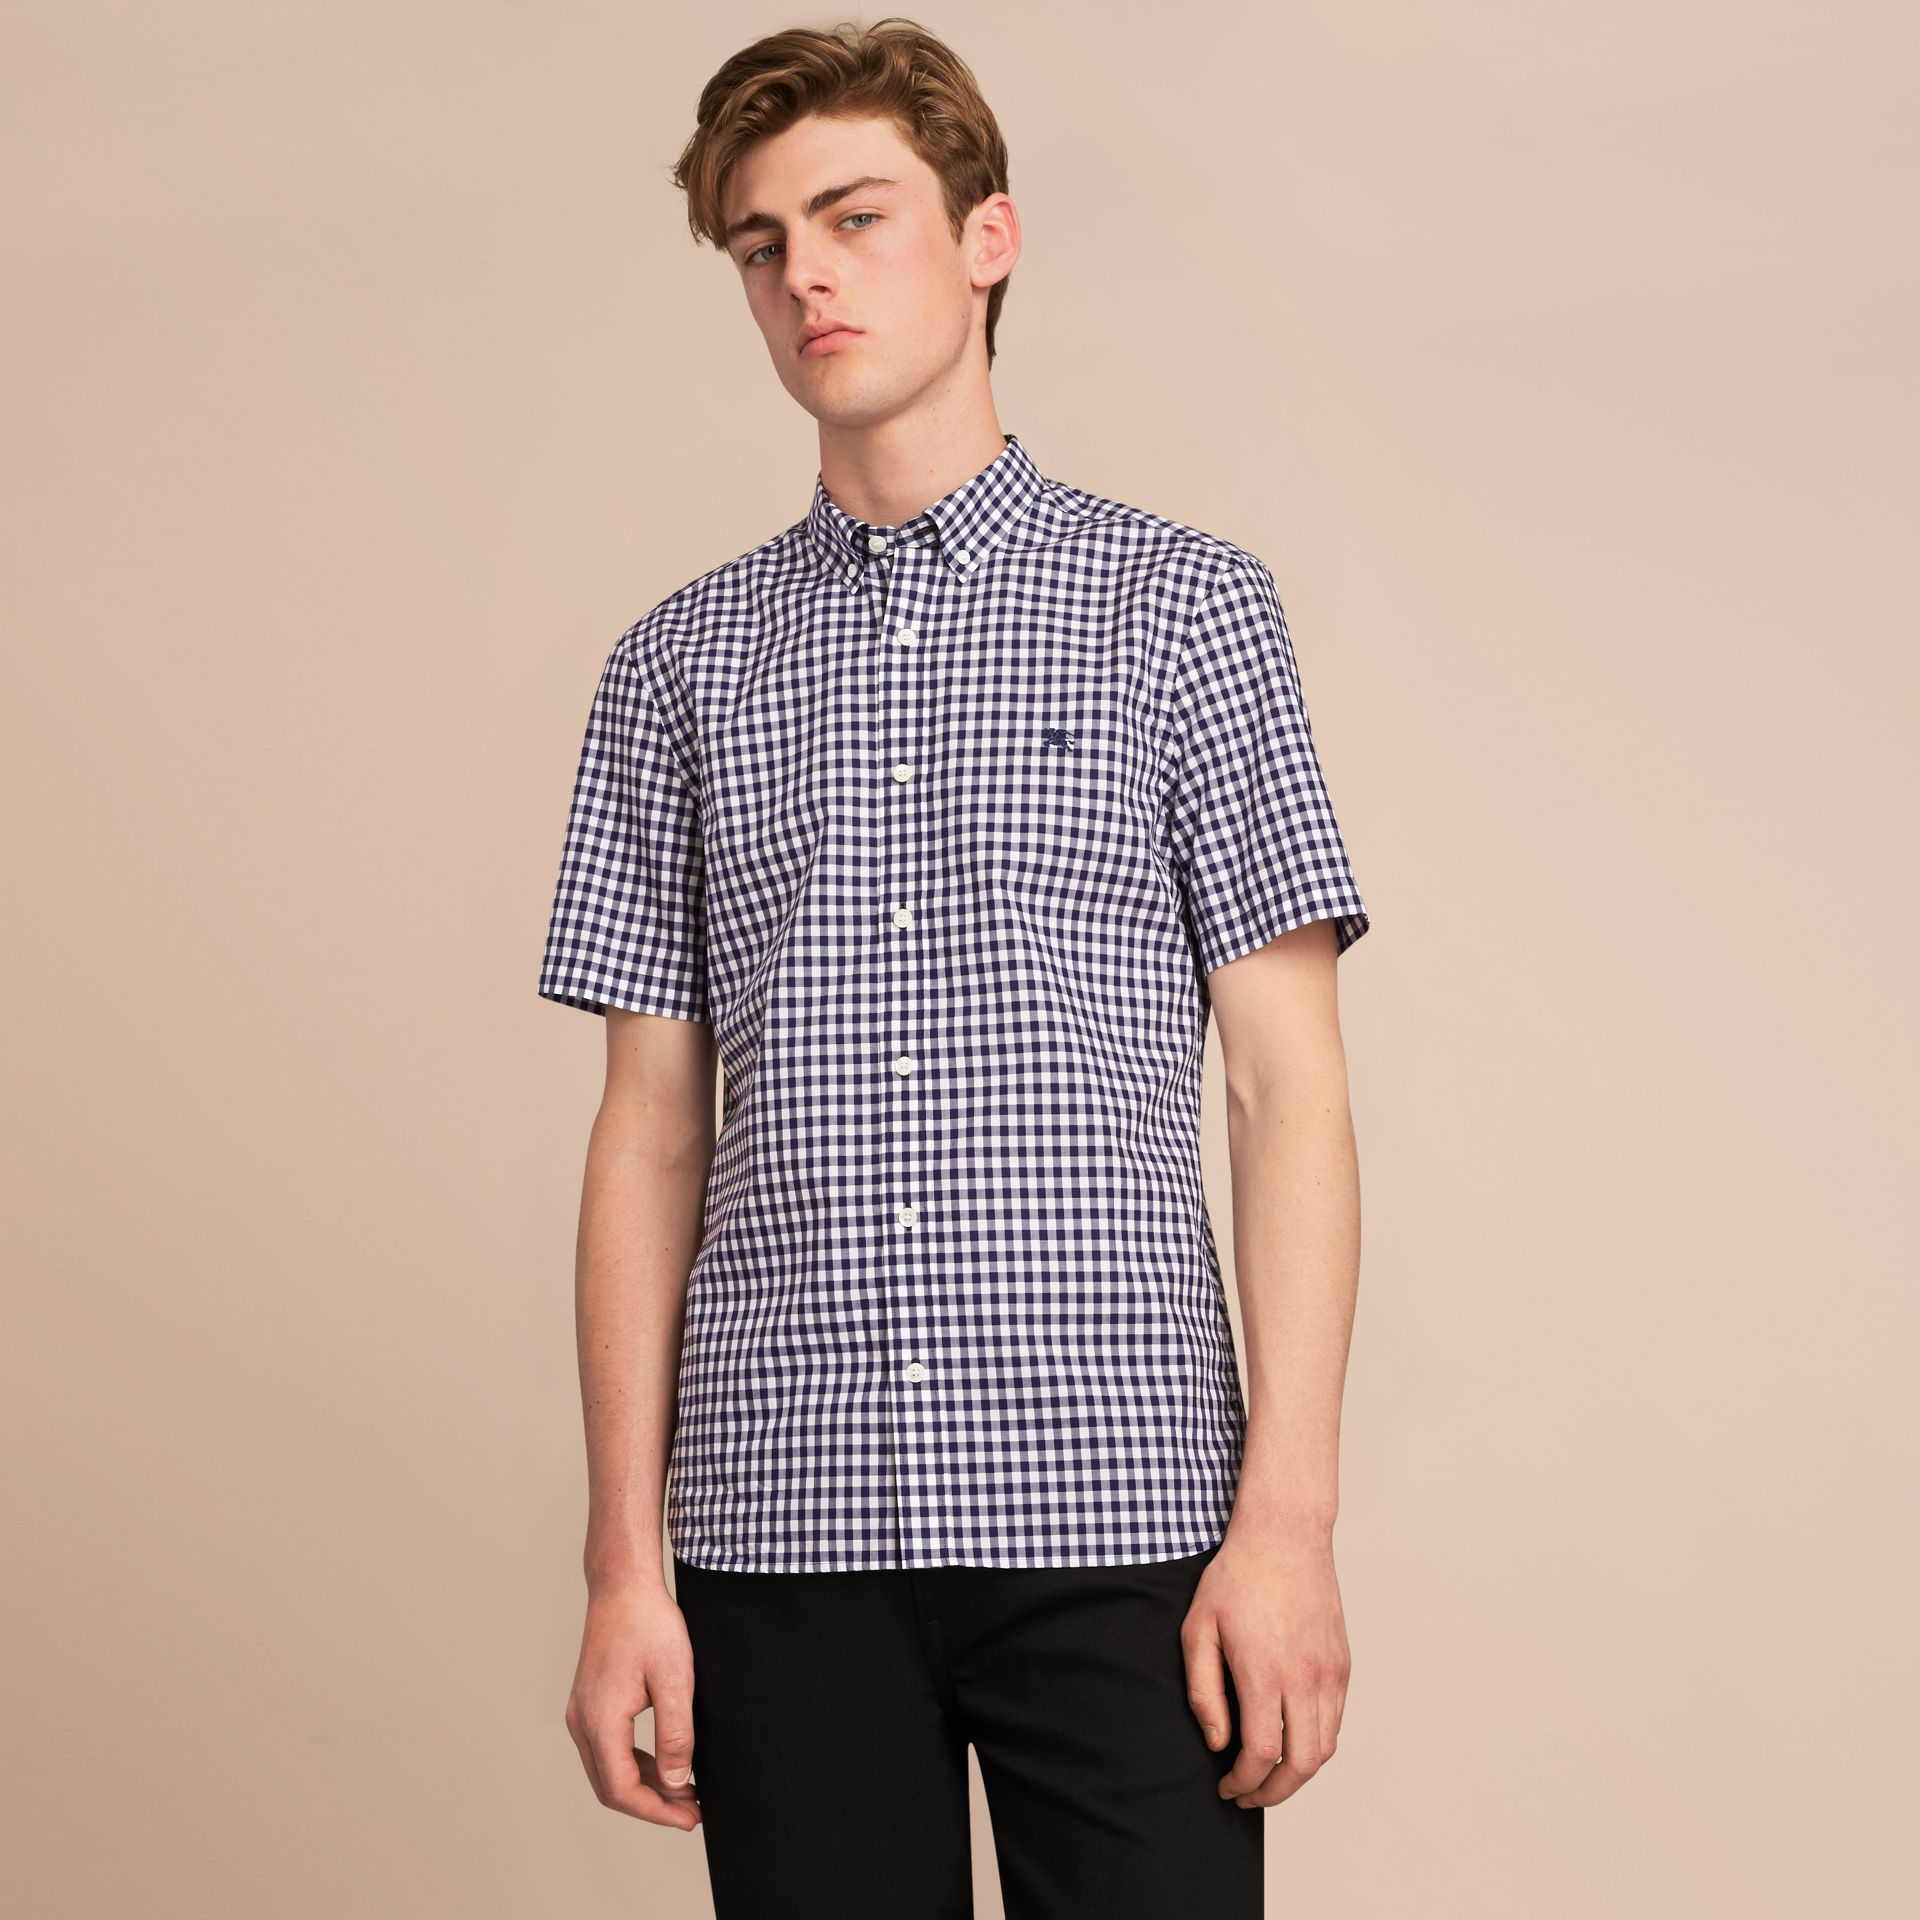 Short-sleeve Button-down Collar Cotton Gingham Shirt in Navy - Men | Burberry Canada - gallery image 6